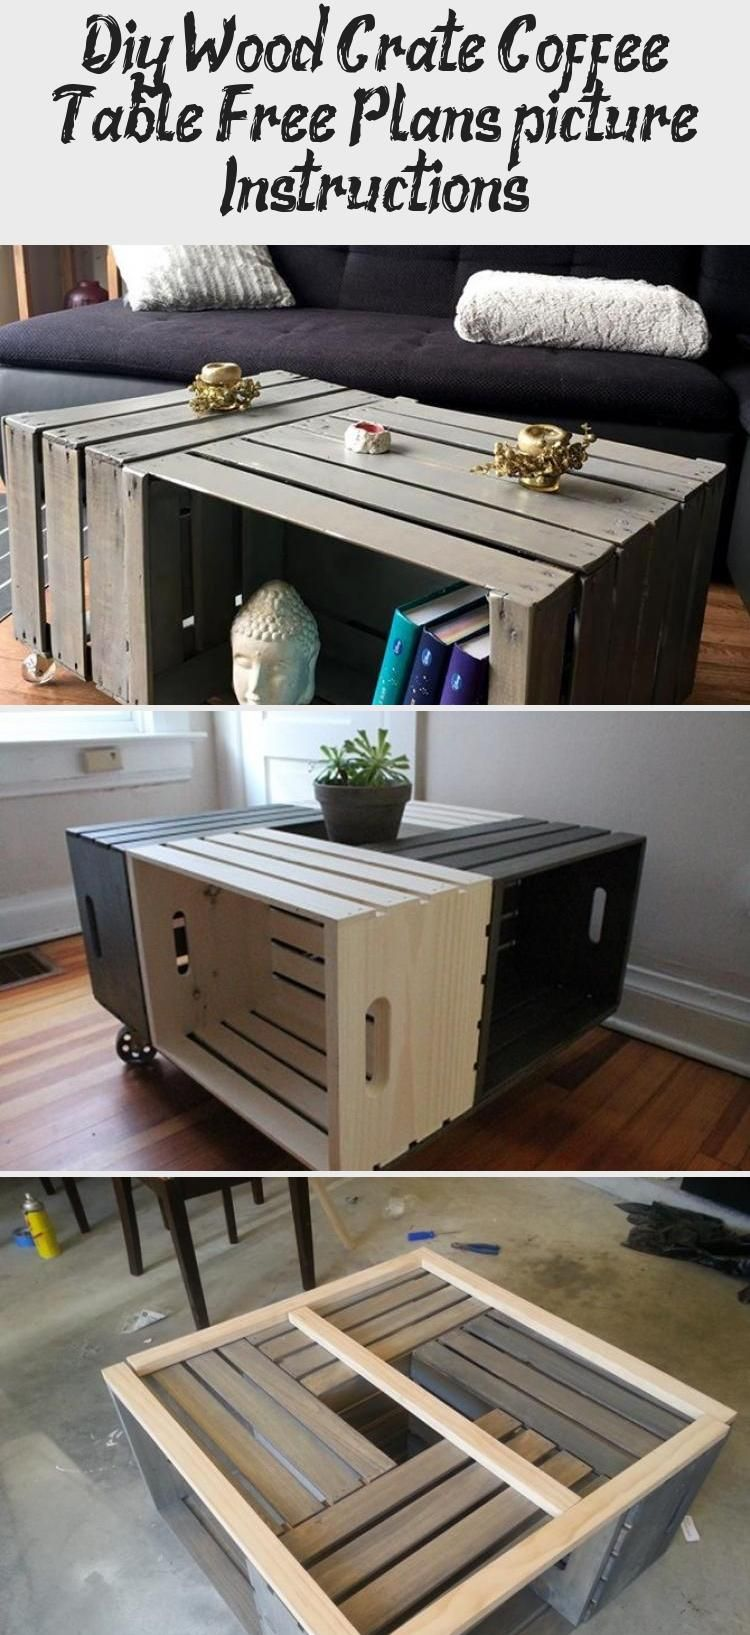 Diy Wood Crate Coffee Table Free Plans [picture Instructions] - Wooden World - Woodworks